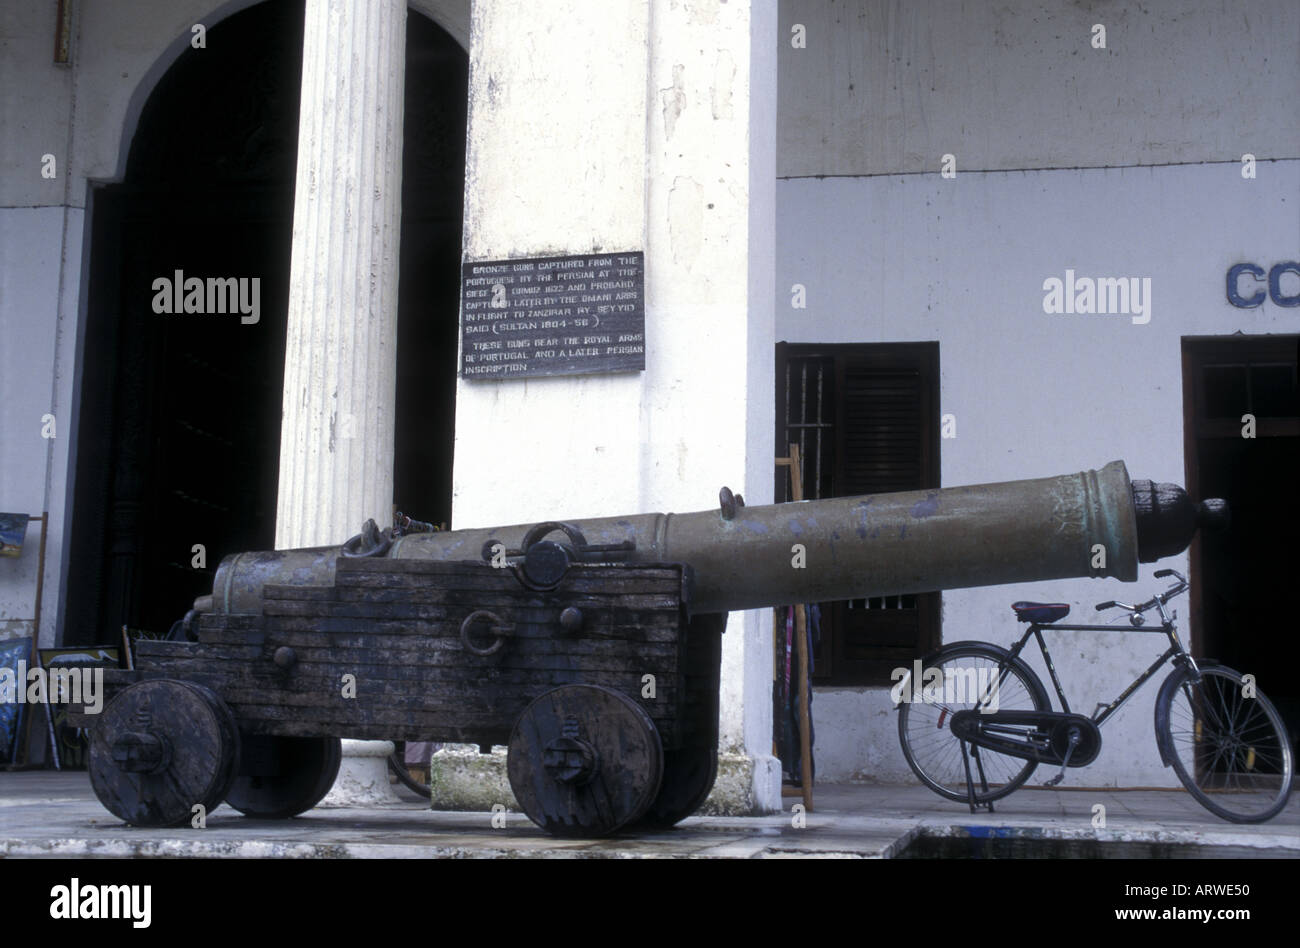 A 15th century bronze gun or cannon on the veranda of the House of Wonders or Beit el Ajaib in the stone town Zanzibar Tanzani - Stock Image